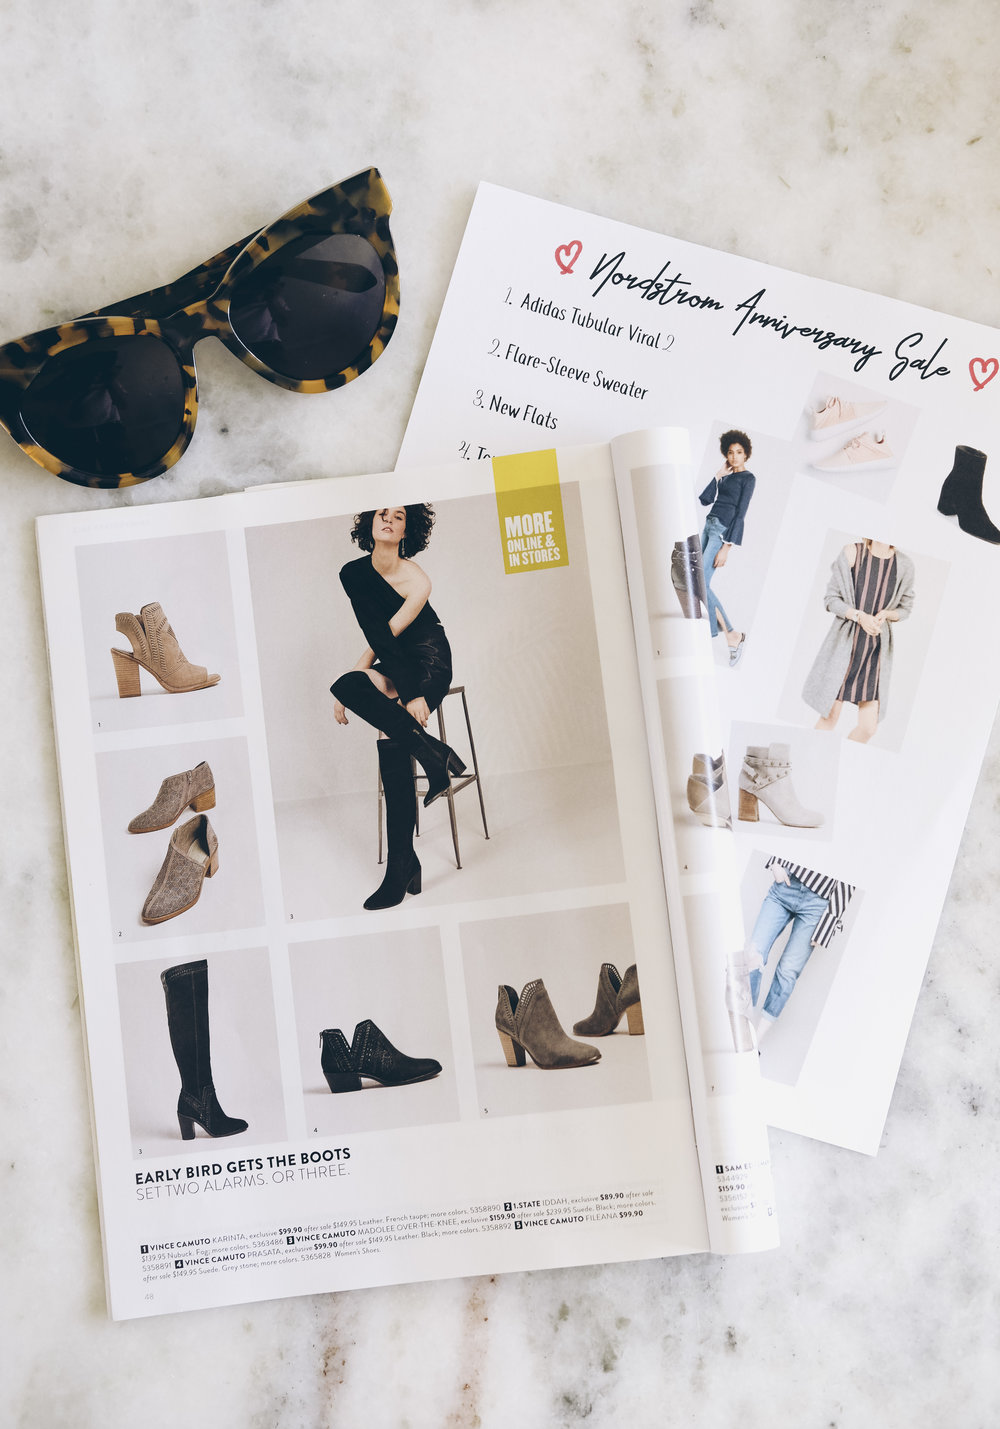 HOW TO: - CREATE A RELIABLE SHOPPING LIST FOR THE NORDSTROM ANNIVERSARY SALE